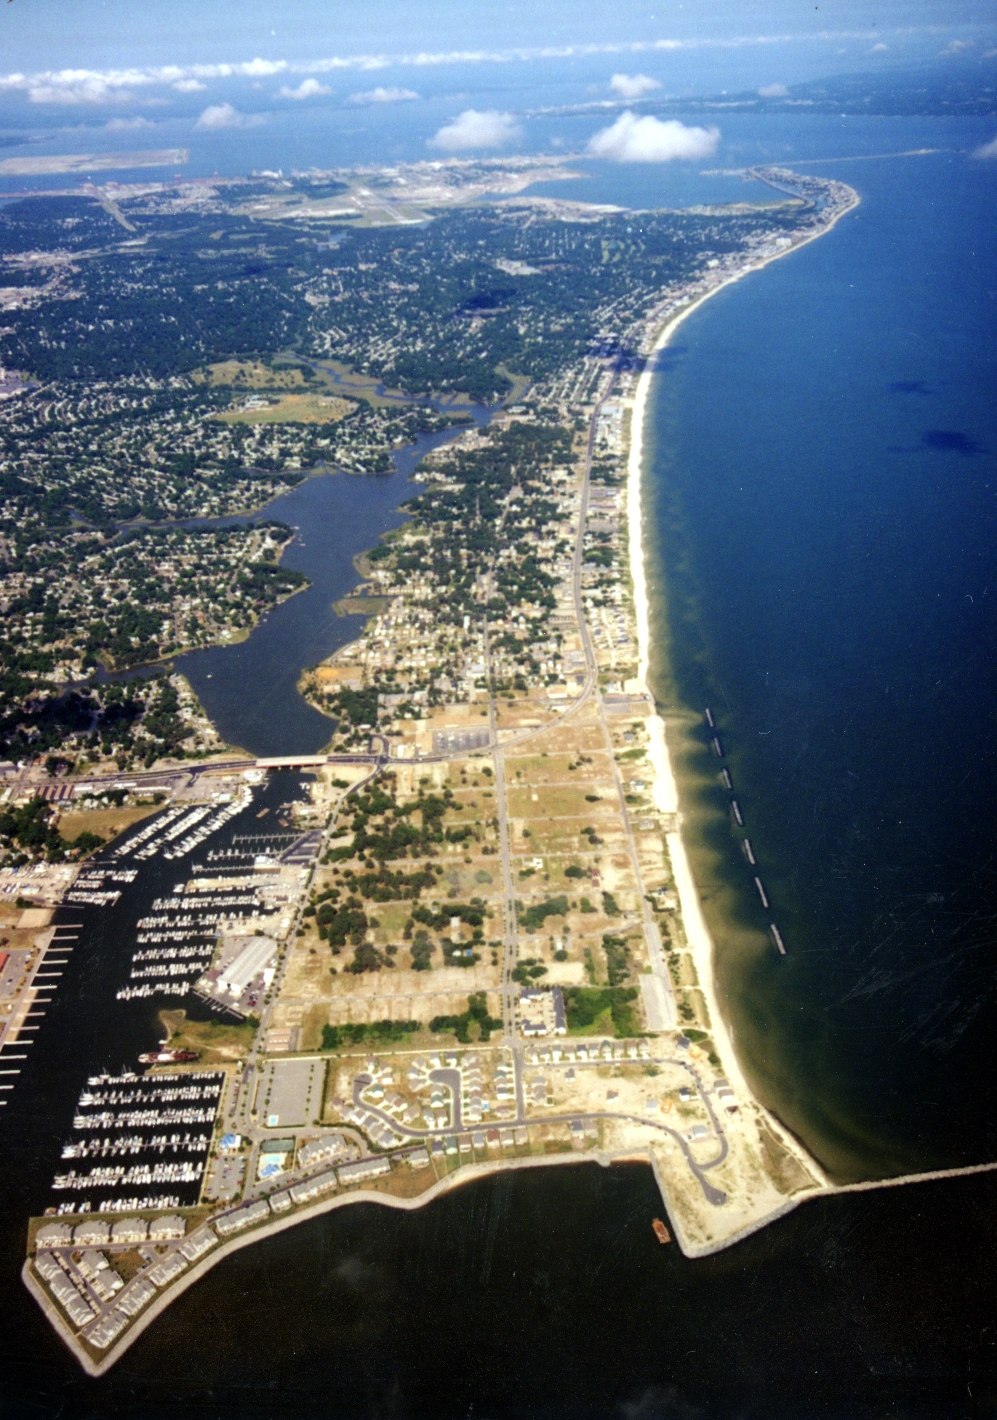 East Beach Site Aerial looking West copy.JPG